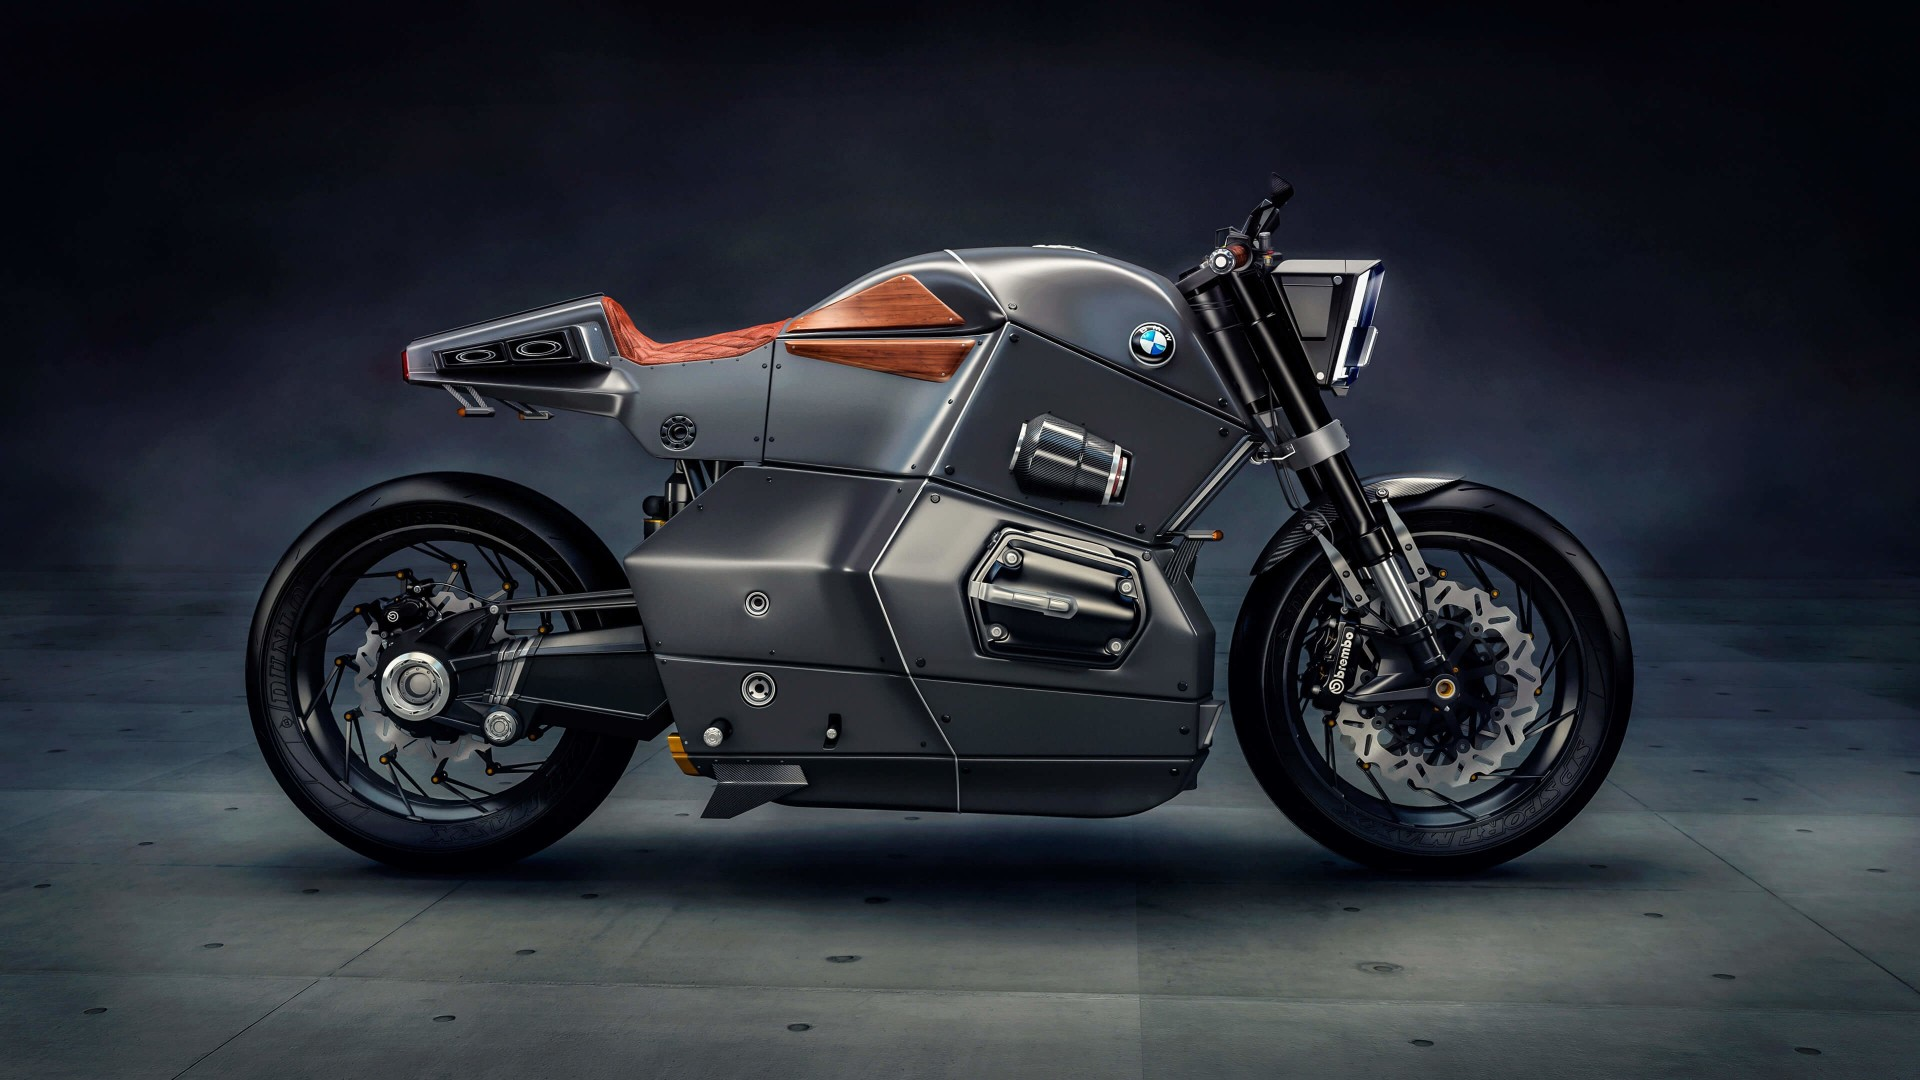 BMW M Bike Concept Wallpaper for Desktop 1920x1080